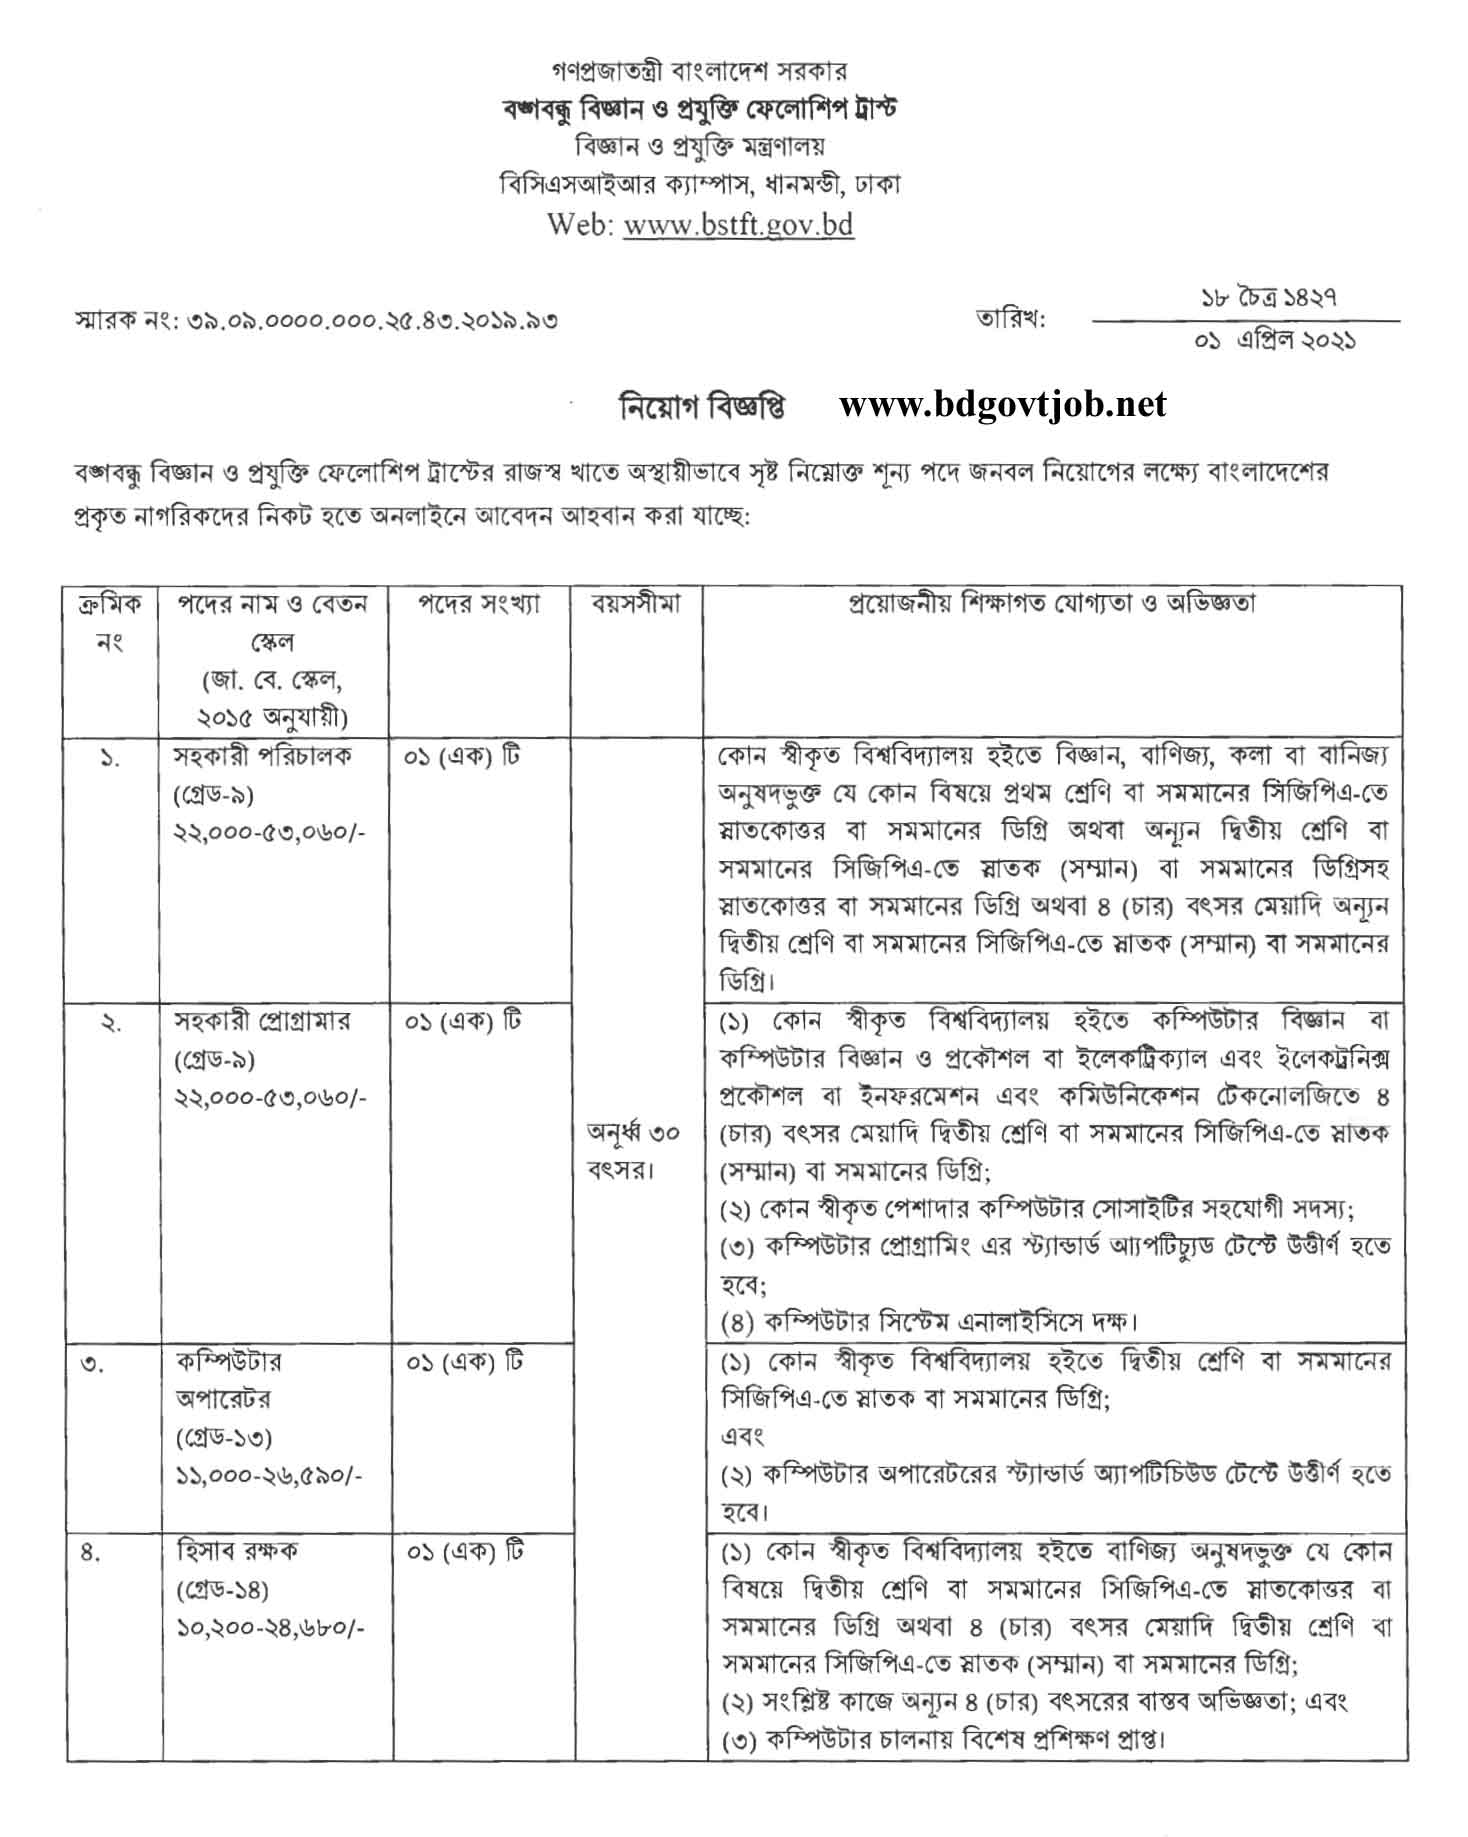 Ministry of Science and Technology MOST Job Circular